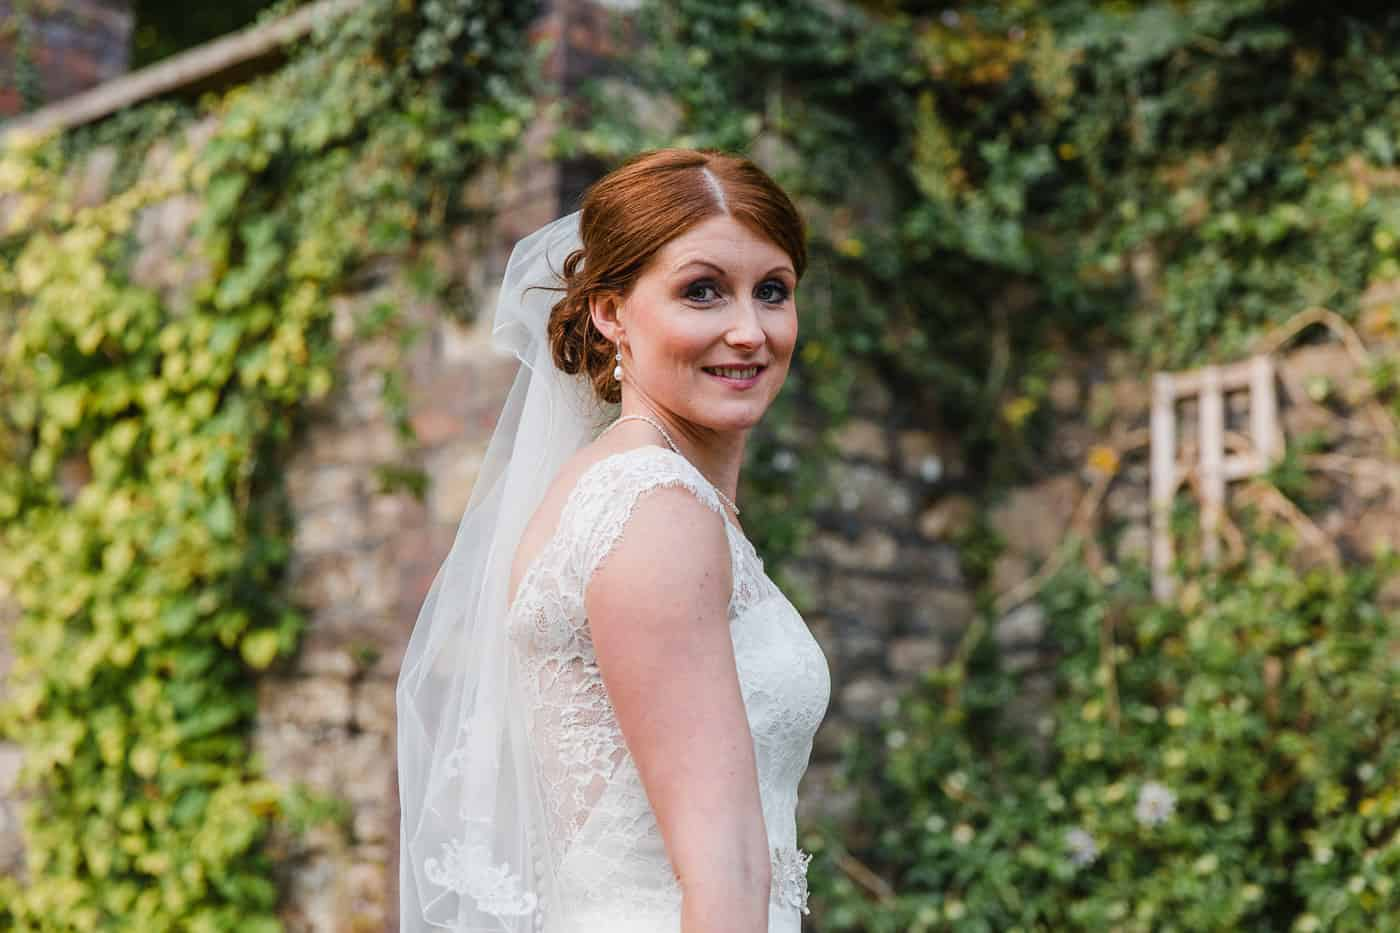 South Wales Wedding Photographer Bridal Portrait